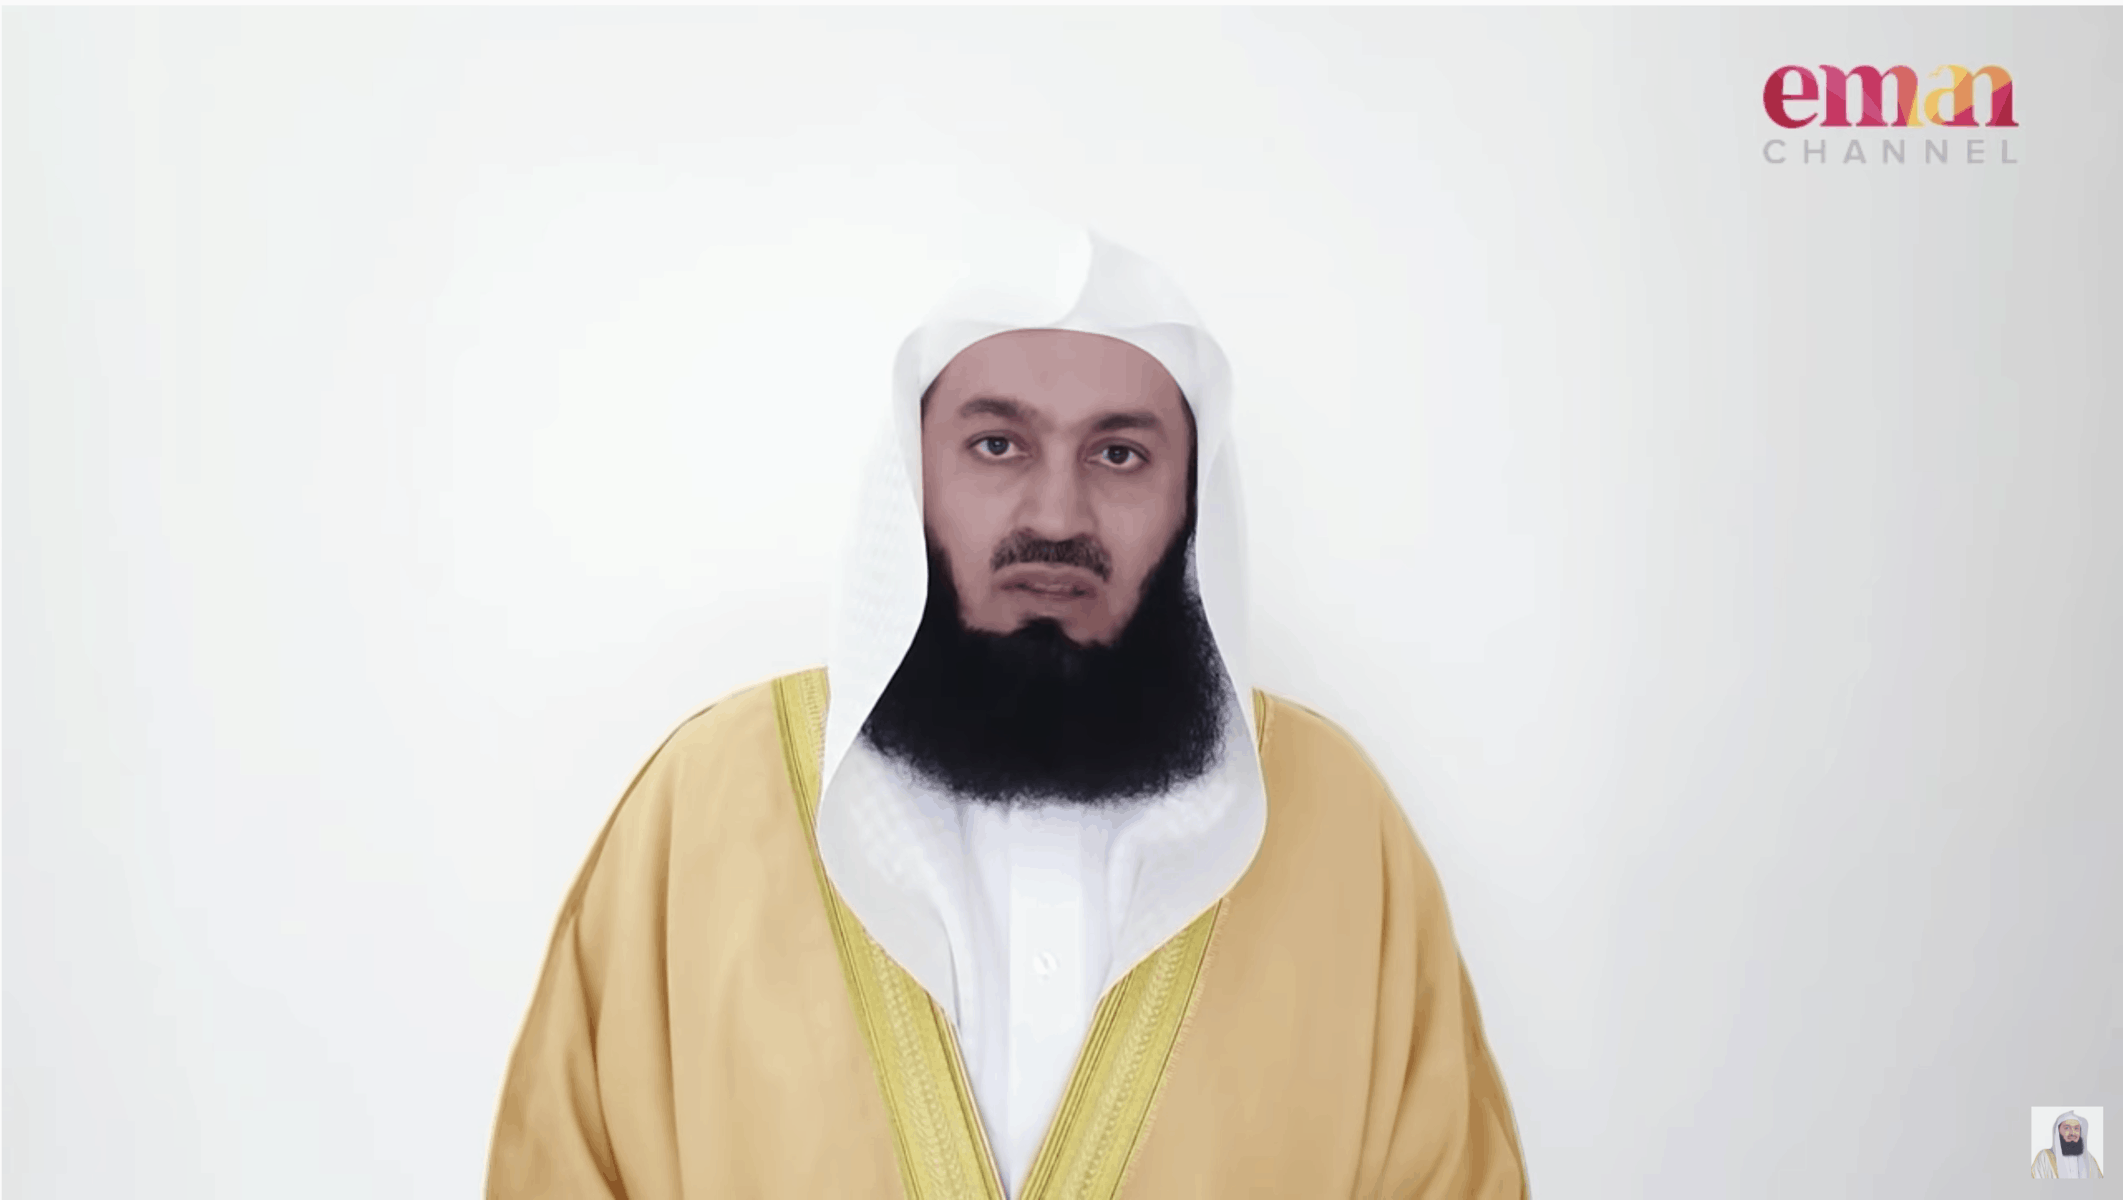 Ismail ibn Musa Menk – Powerful reminder to #StaySafeStayHome